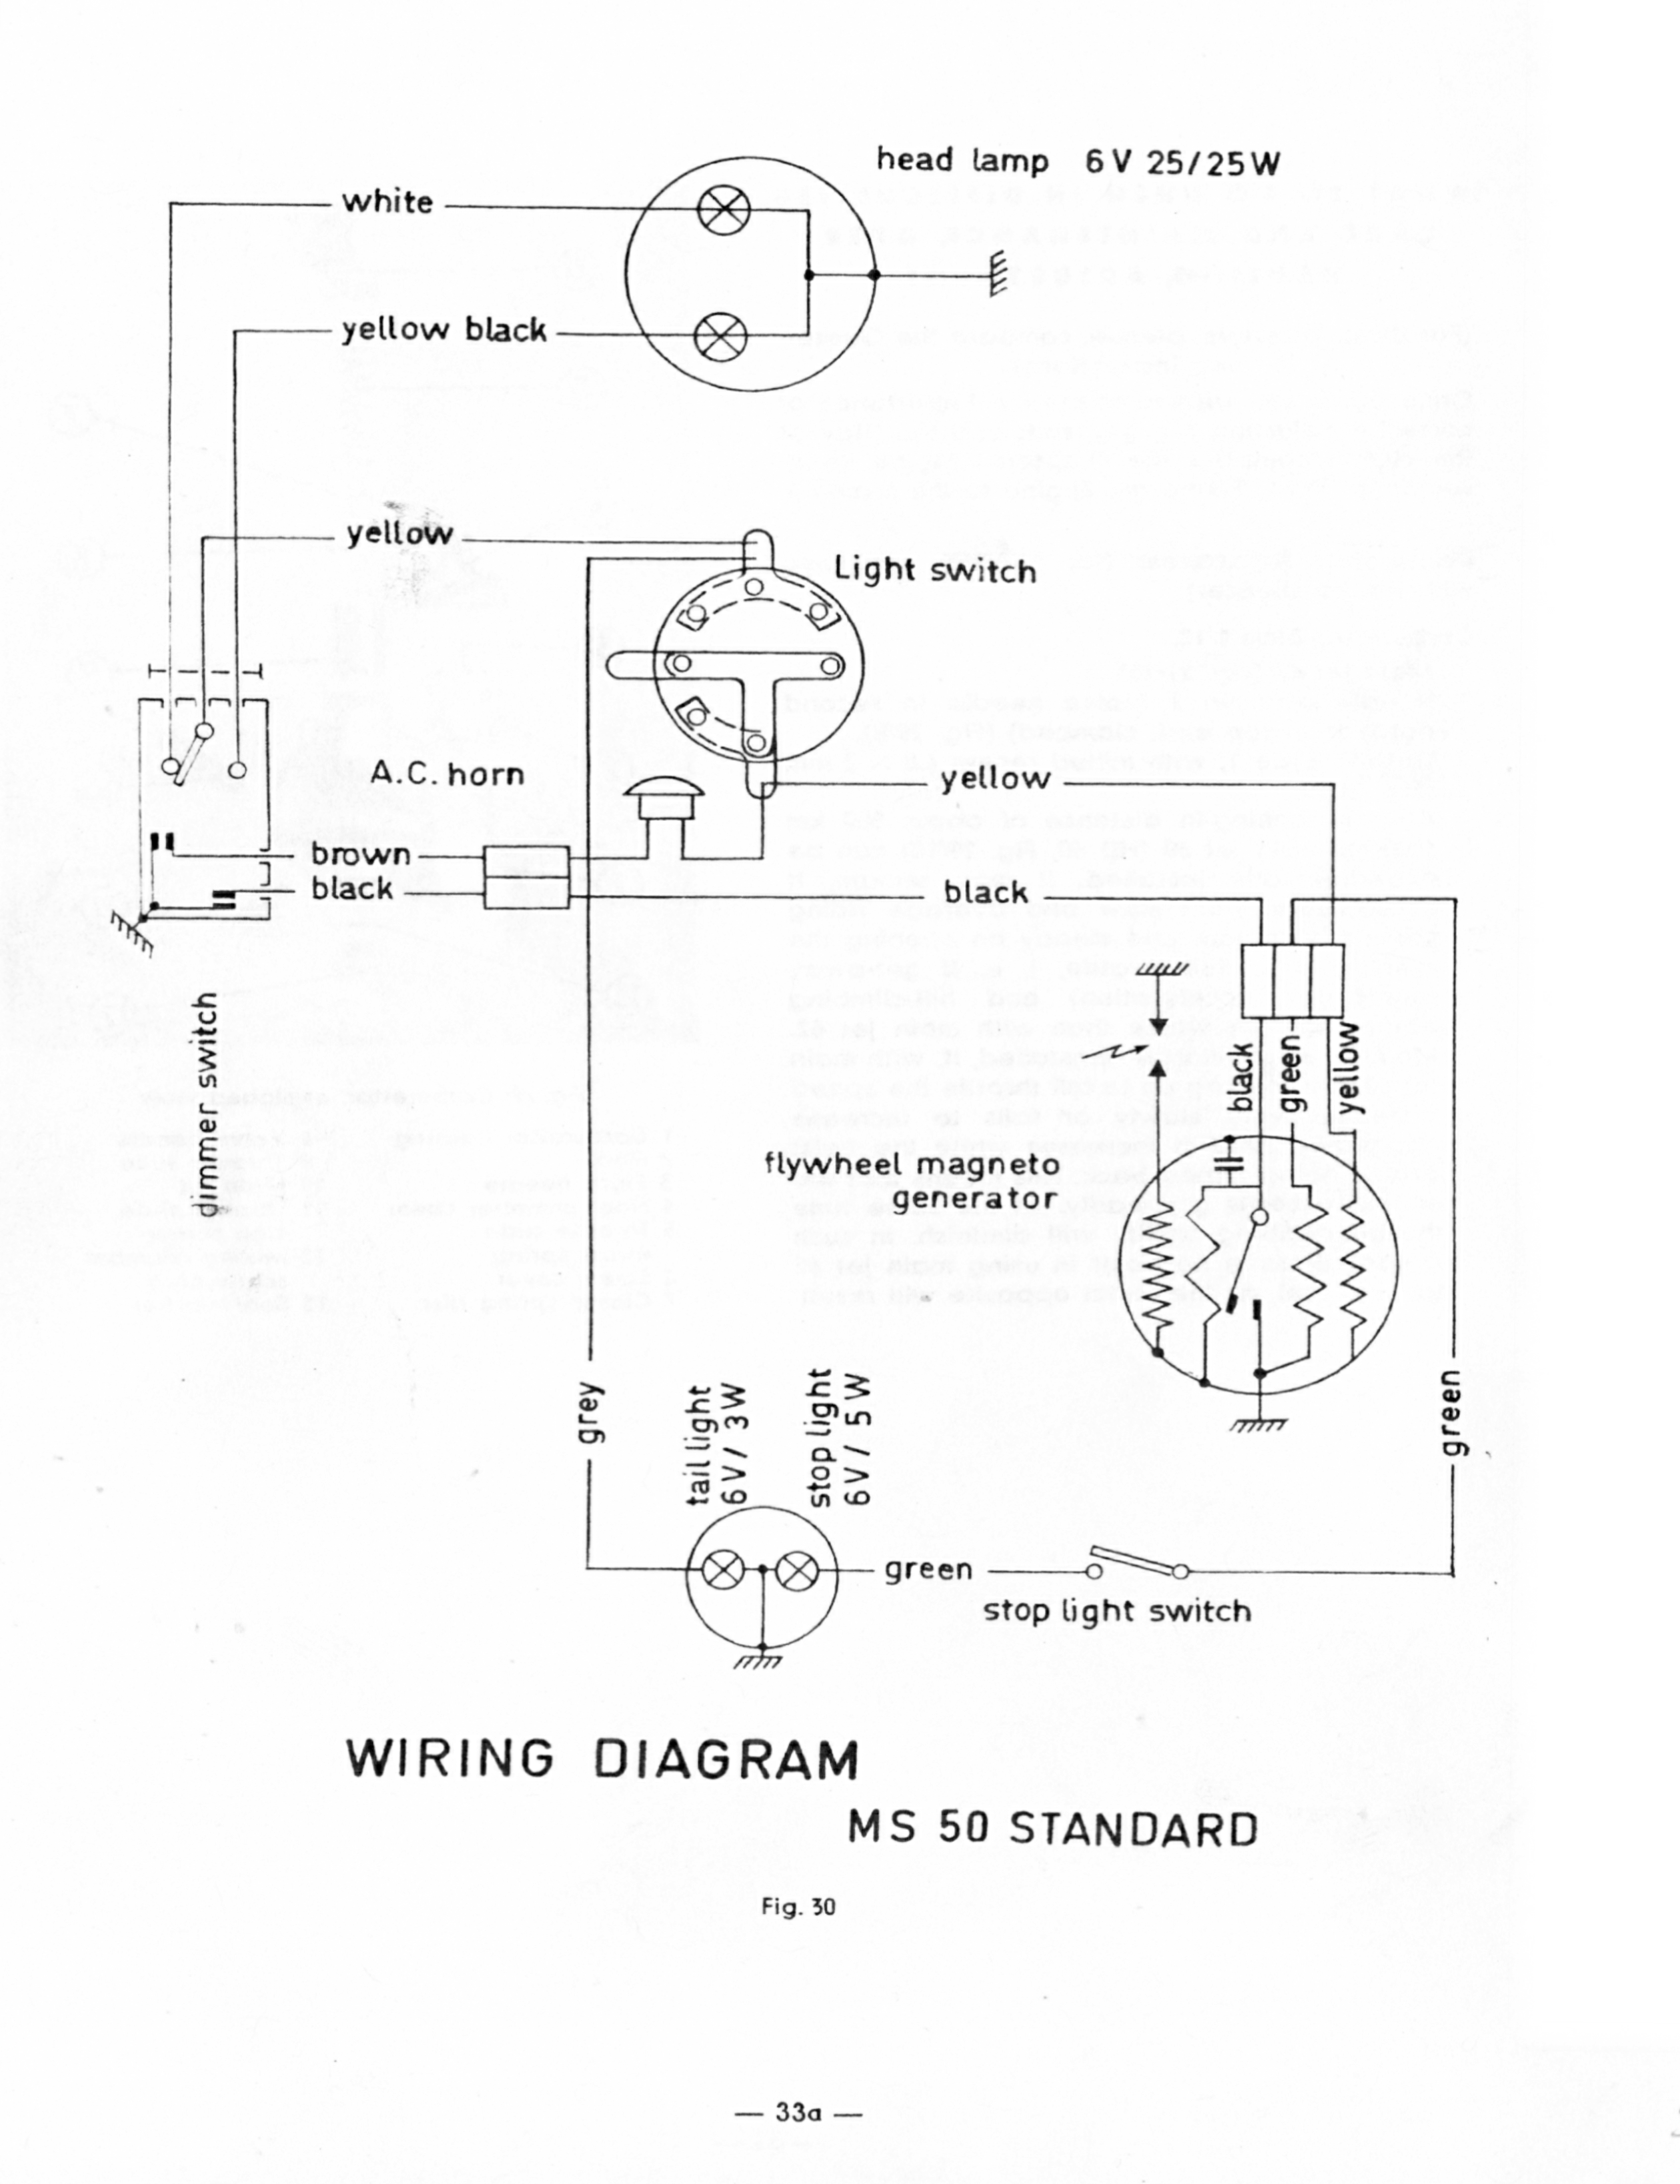 Puch_MS50_wiring_diagram puch wiring diagrams moped wiki  at bakdesigns.co